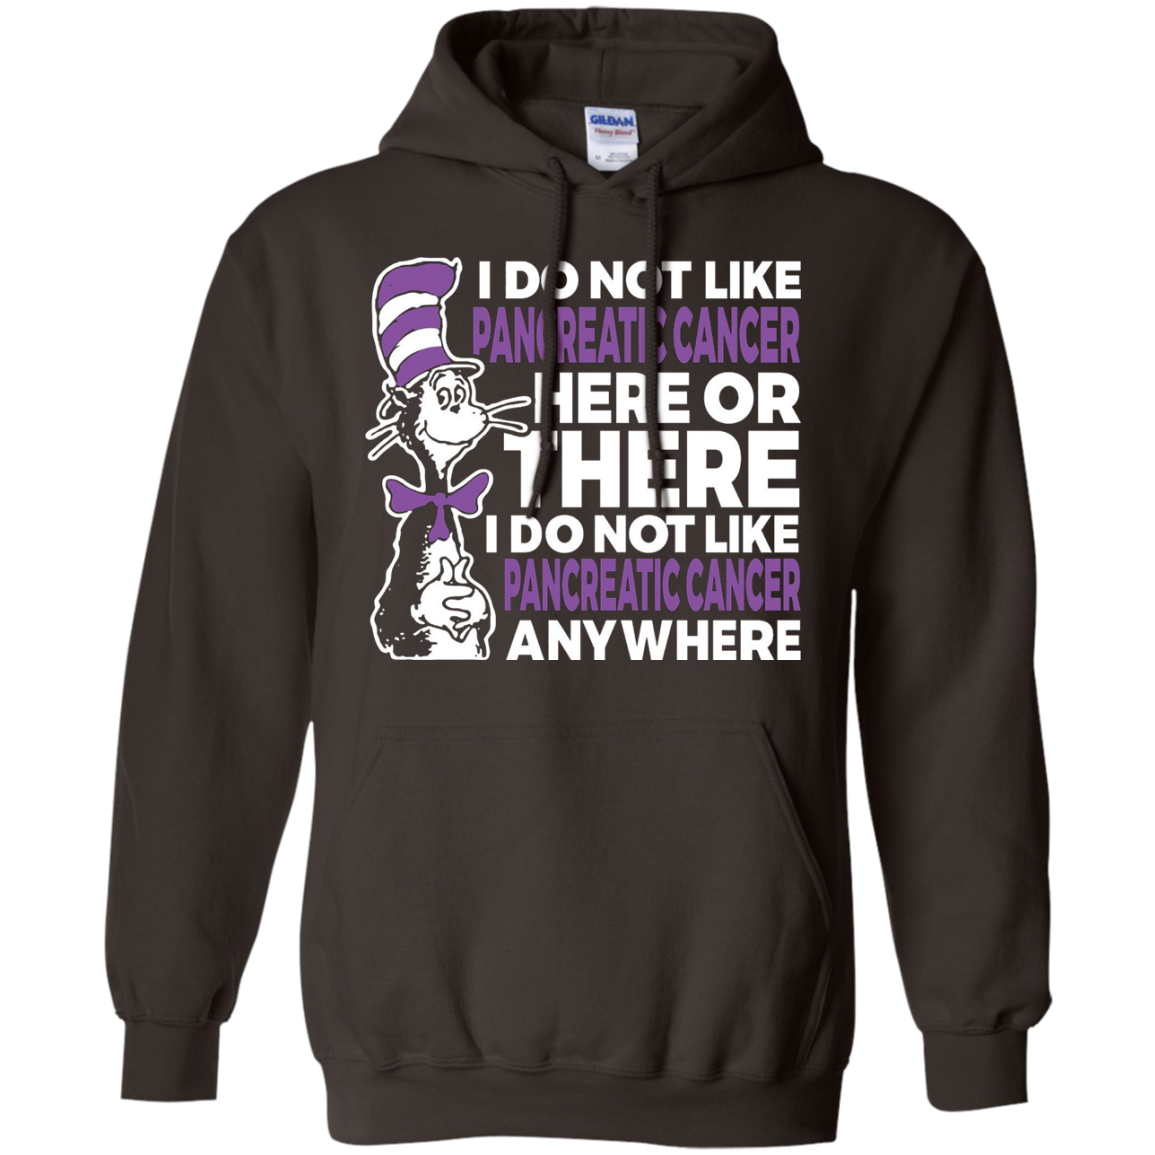 I Do Not Like Pancreatic Cancer TShirts Cancer Awareness Tee